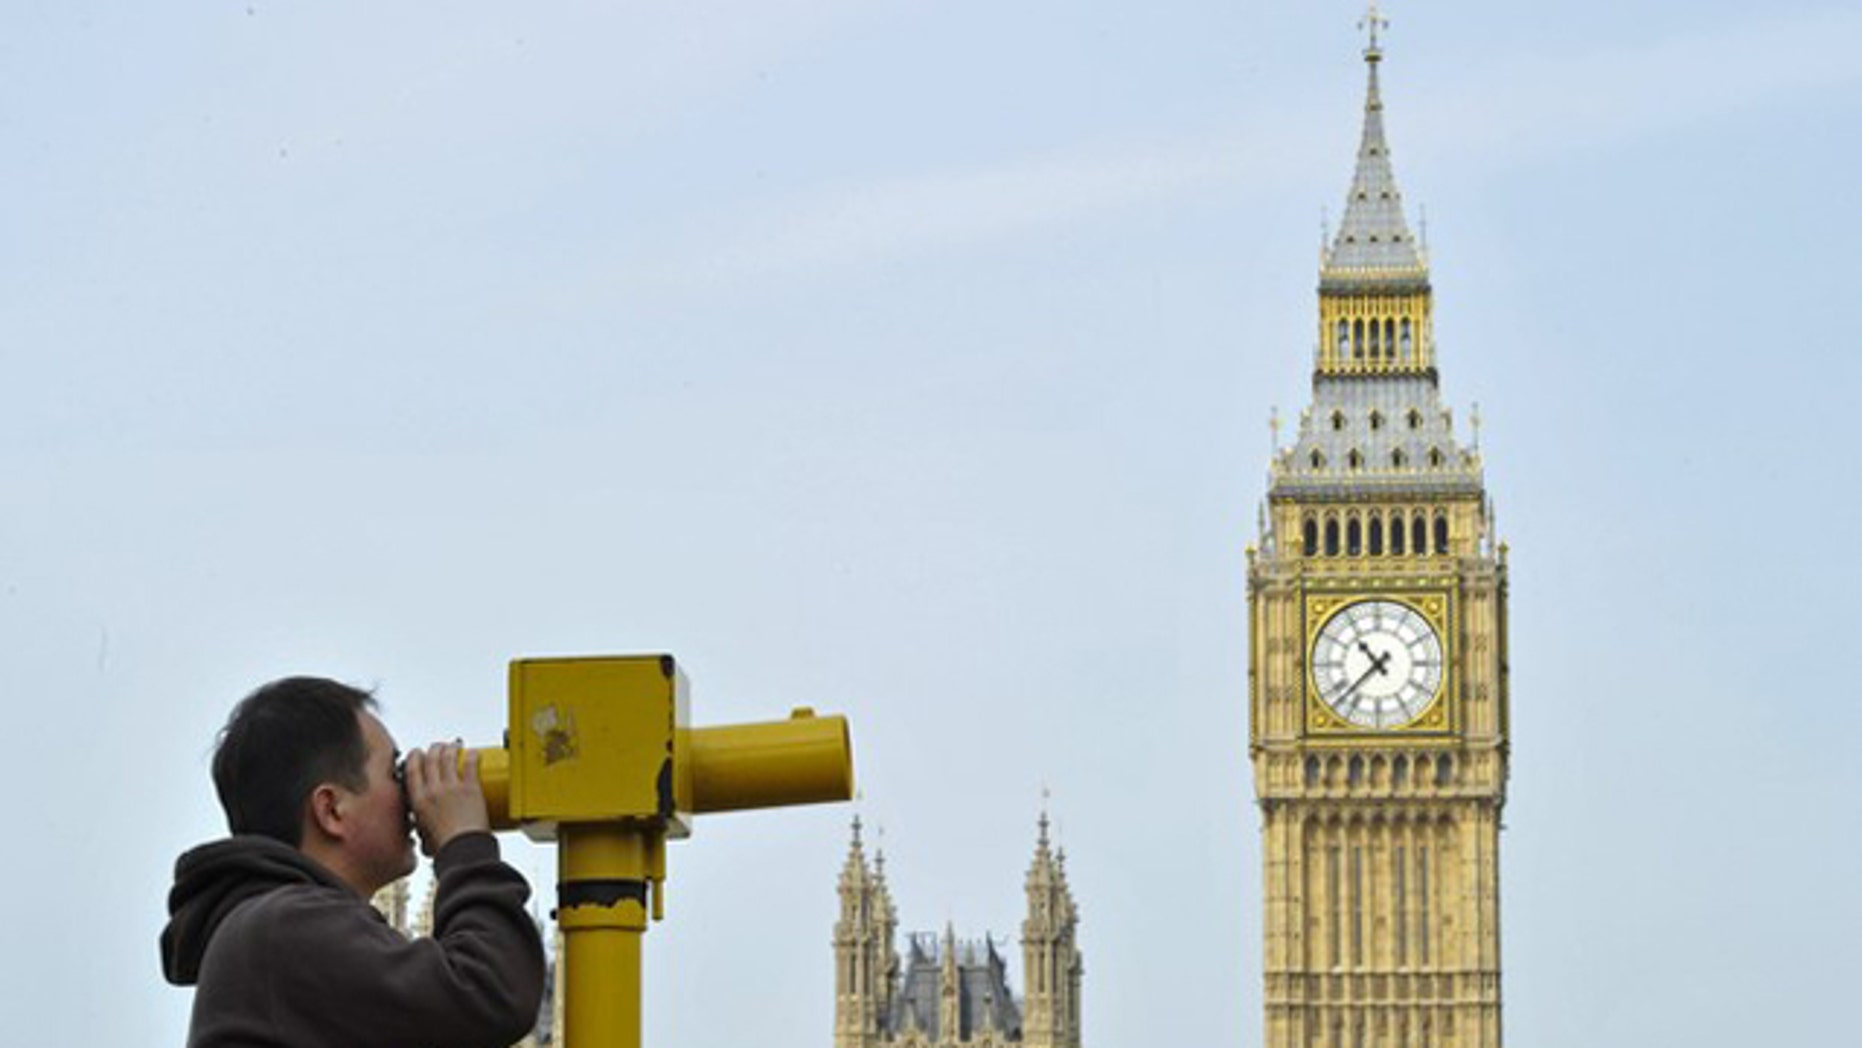 May 6: A man looks through a telescope opposite Big Ben and the Houses of Parliament, in central London.